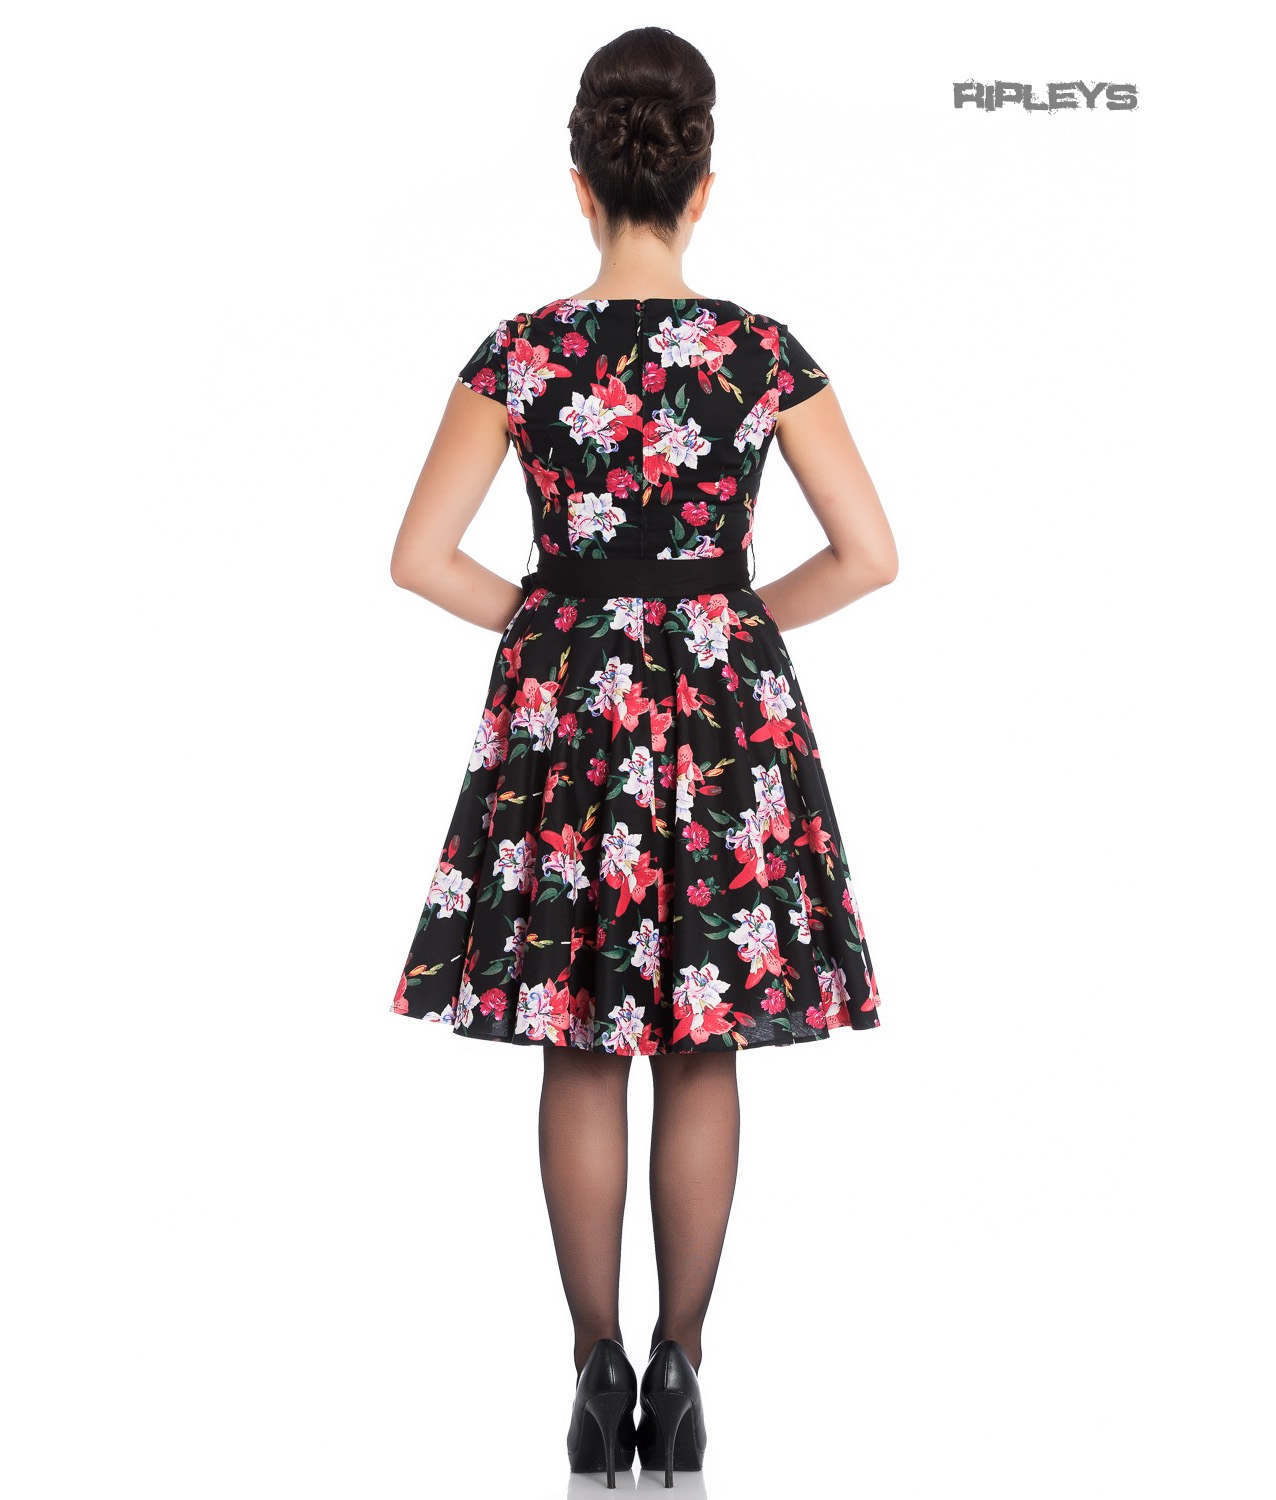 Hell-Bunny-Pin-Up-Mid-Length-50s-Dress-LILIANA-Lilly-Black-Flowers-Bow-All-Sizes thumbnail 4